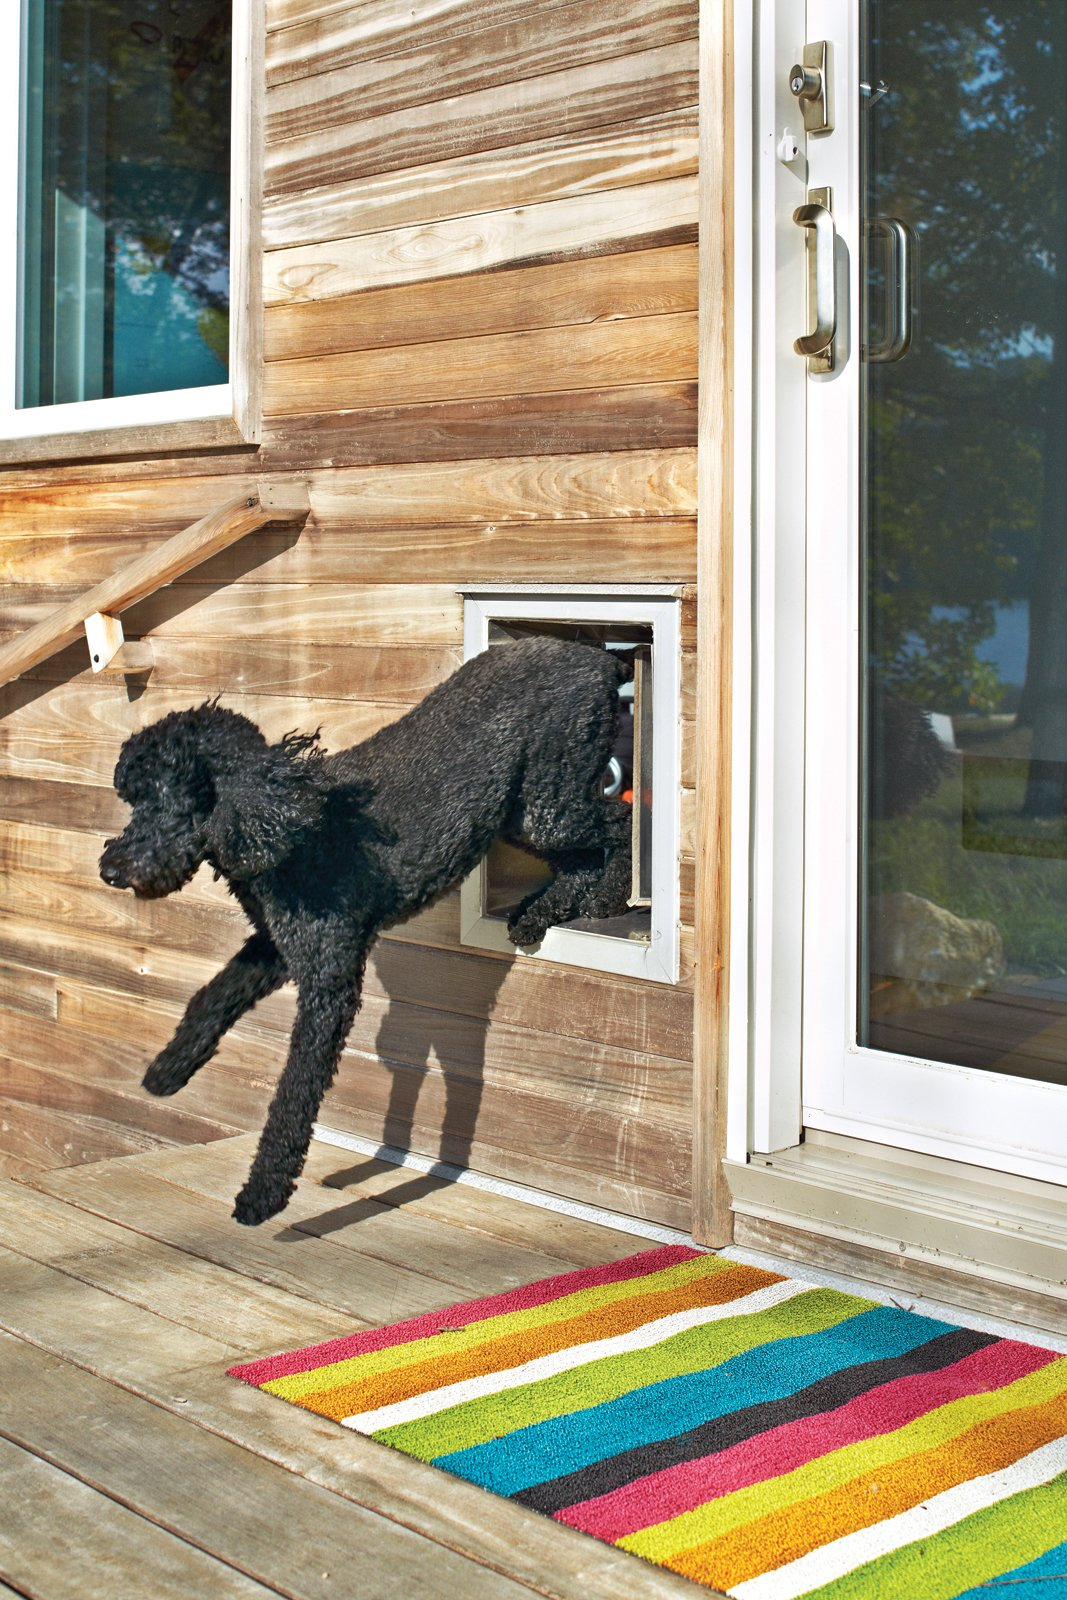 Doors, Metal, and Exterior Emergency Exit: A poodle-size dog door is a must for Max, who, as his owner reports, loves the lake house. Blake has also been known to eschew the sliding glass doors in favor of the smaller exit point.  andersenwindows.com  Photo 5 of 25 in Leap Into the Year of the Dog With These 25 Pups in the Modern World from Designers and Dogs: A Modern Love Story